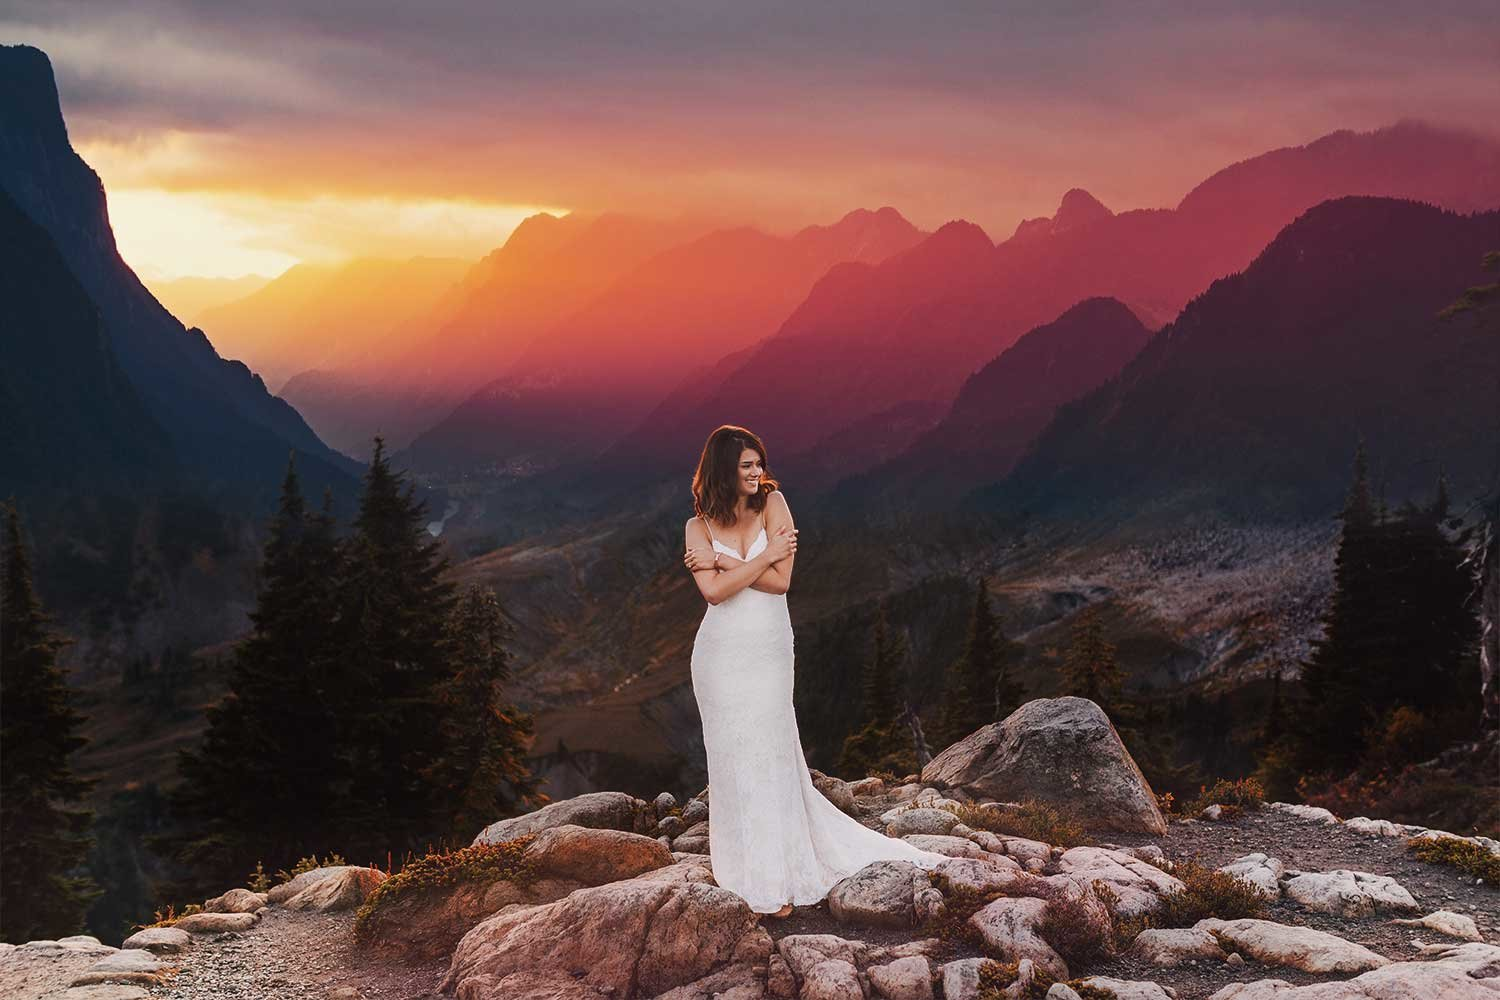 epic mountain wedding by luma weddings